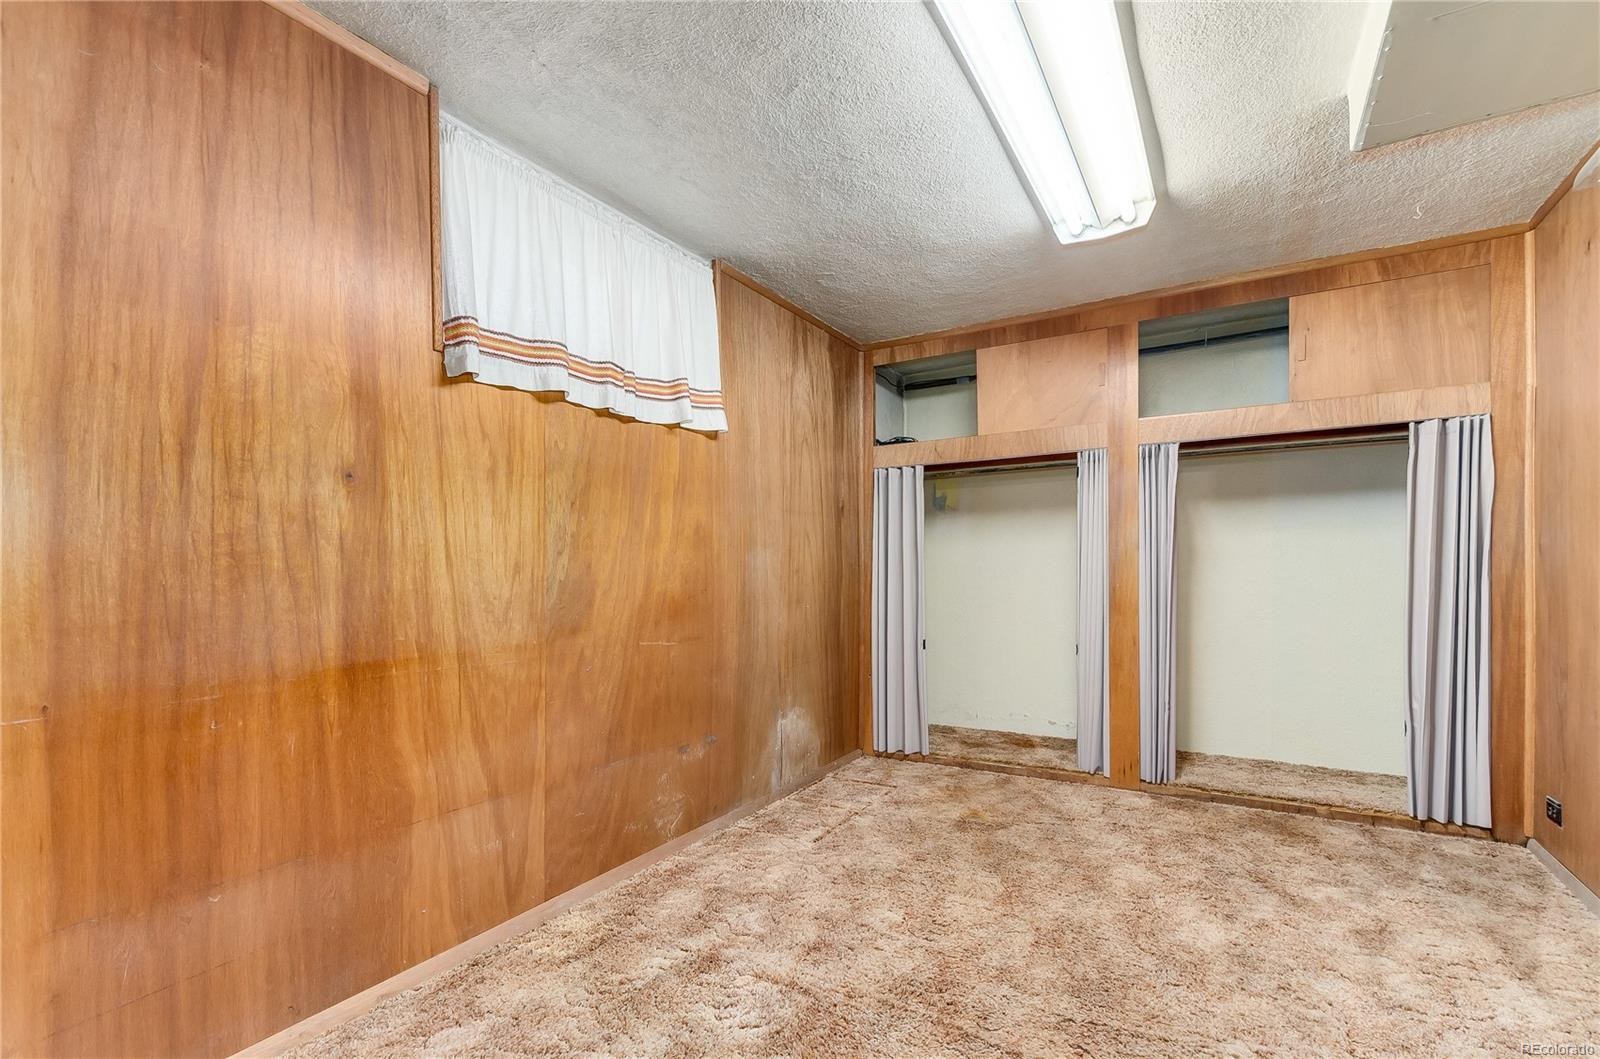 Basement bedroom is perfect for guests.